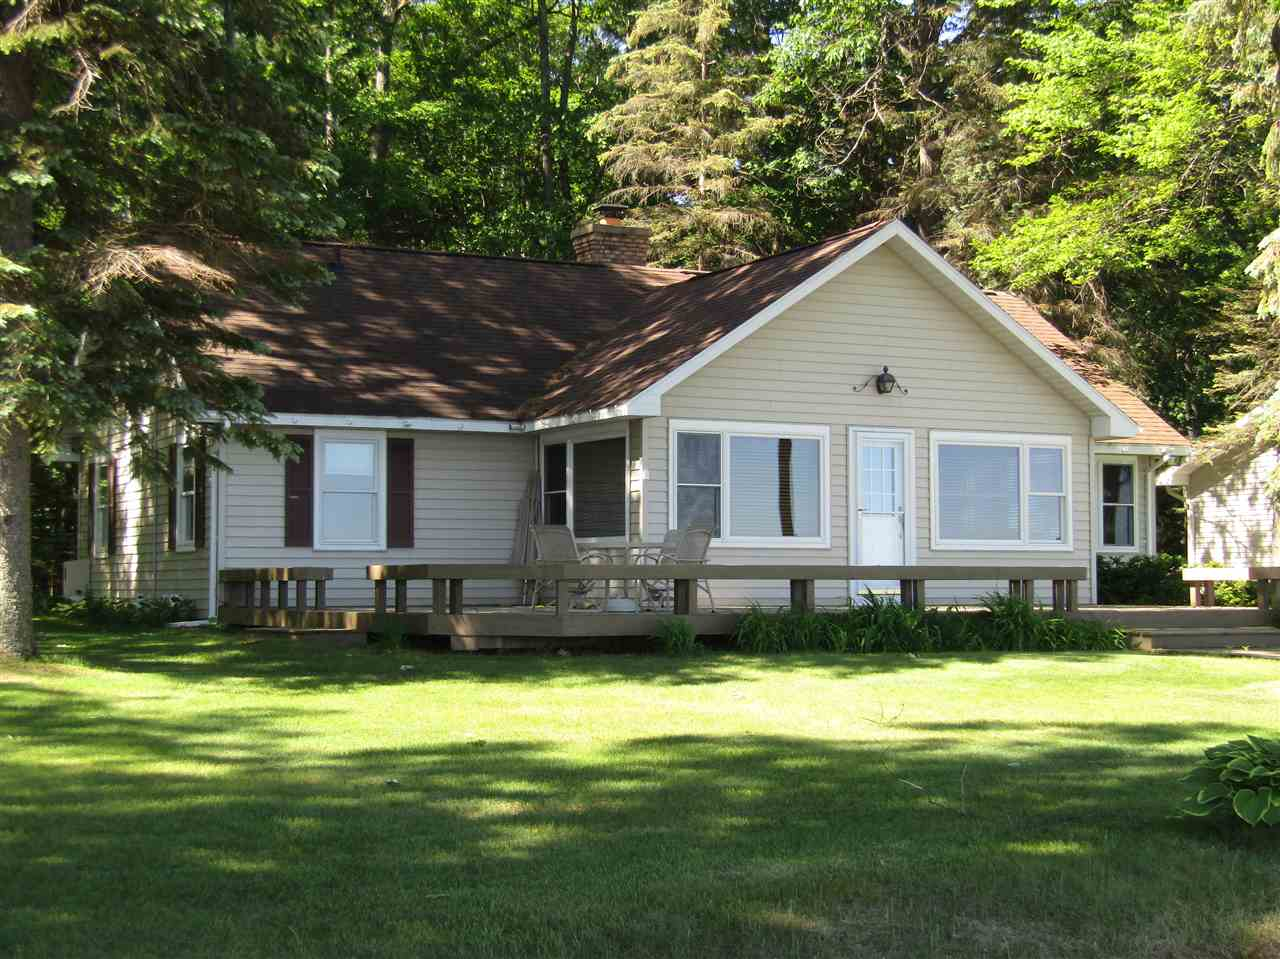 higgins lake divorced singles Browse our higgins lake, mi single-family homes for sale view property photos and listing details of available homes on the market.